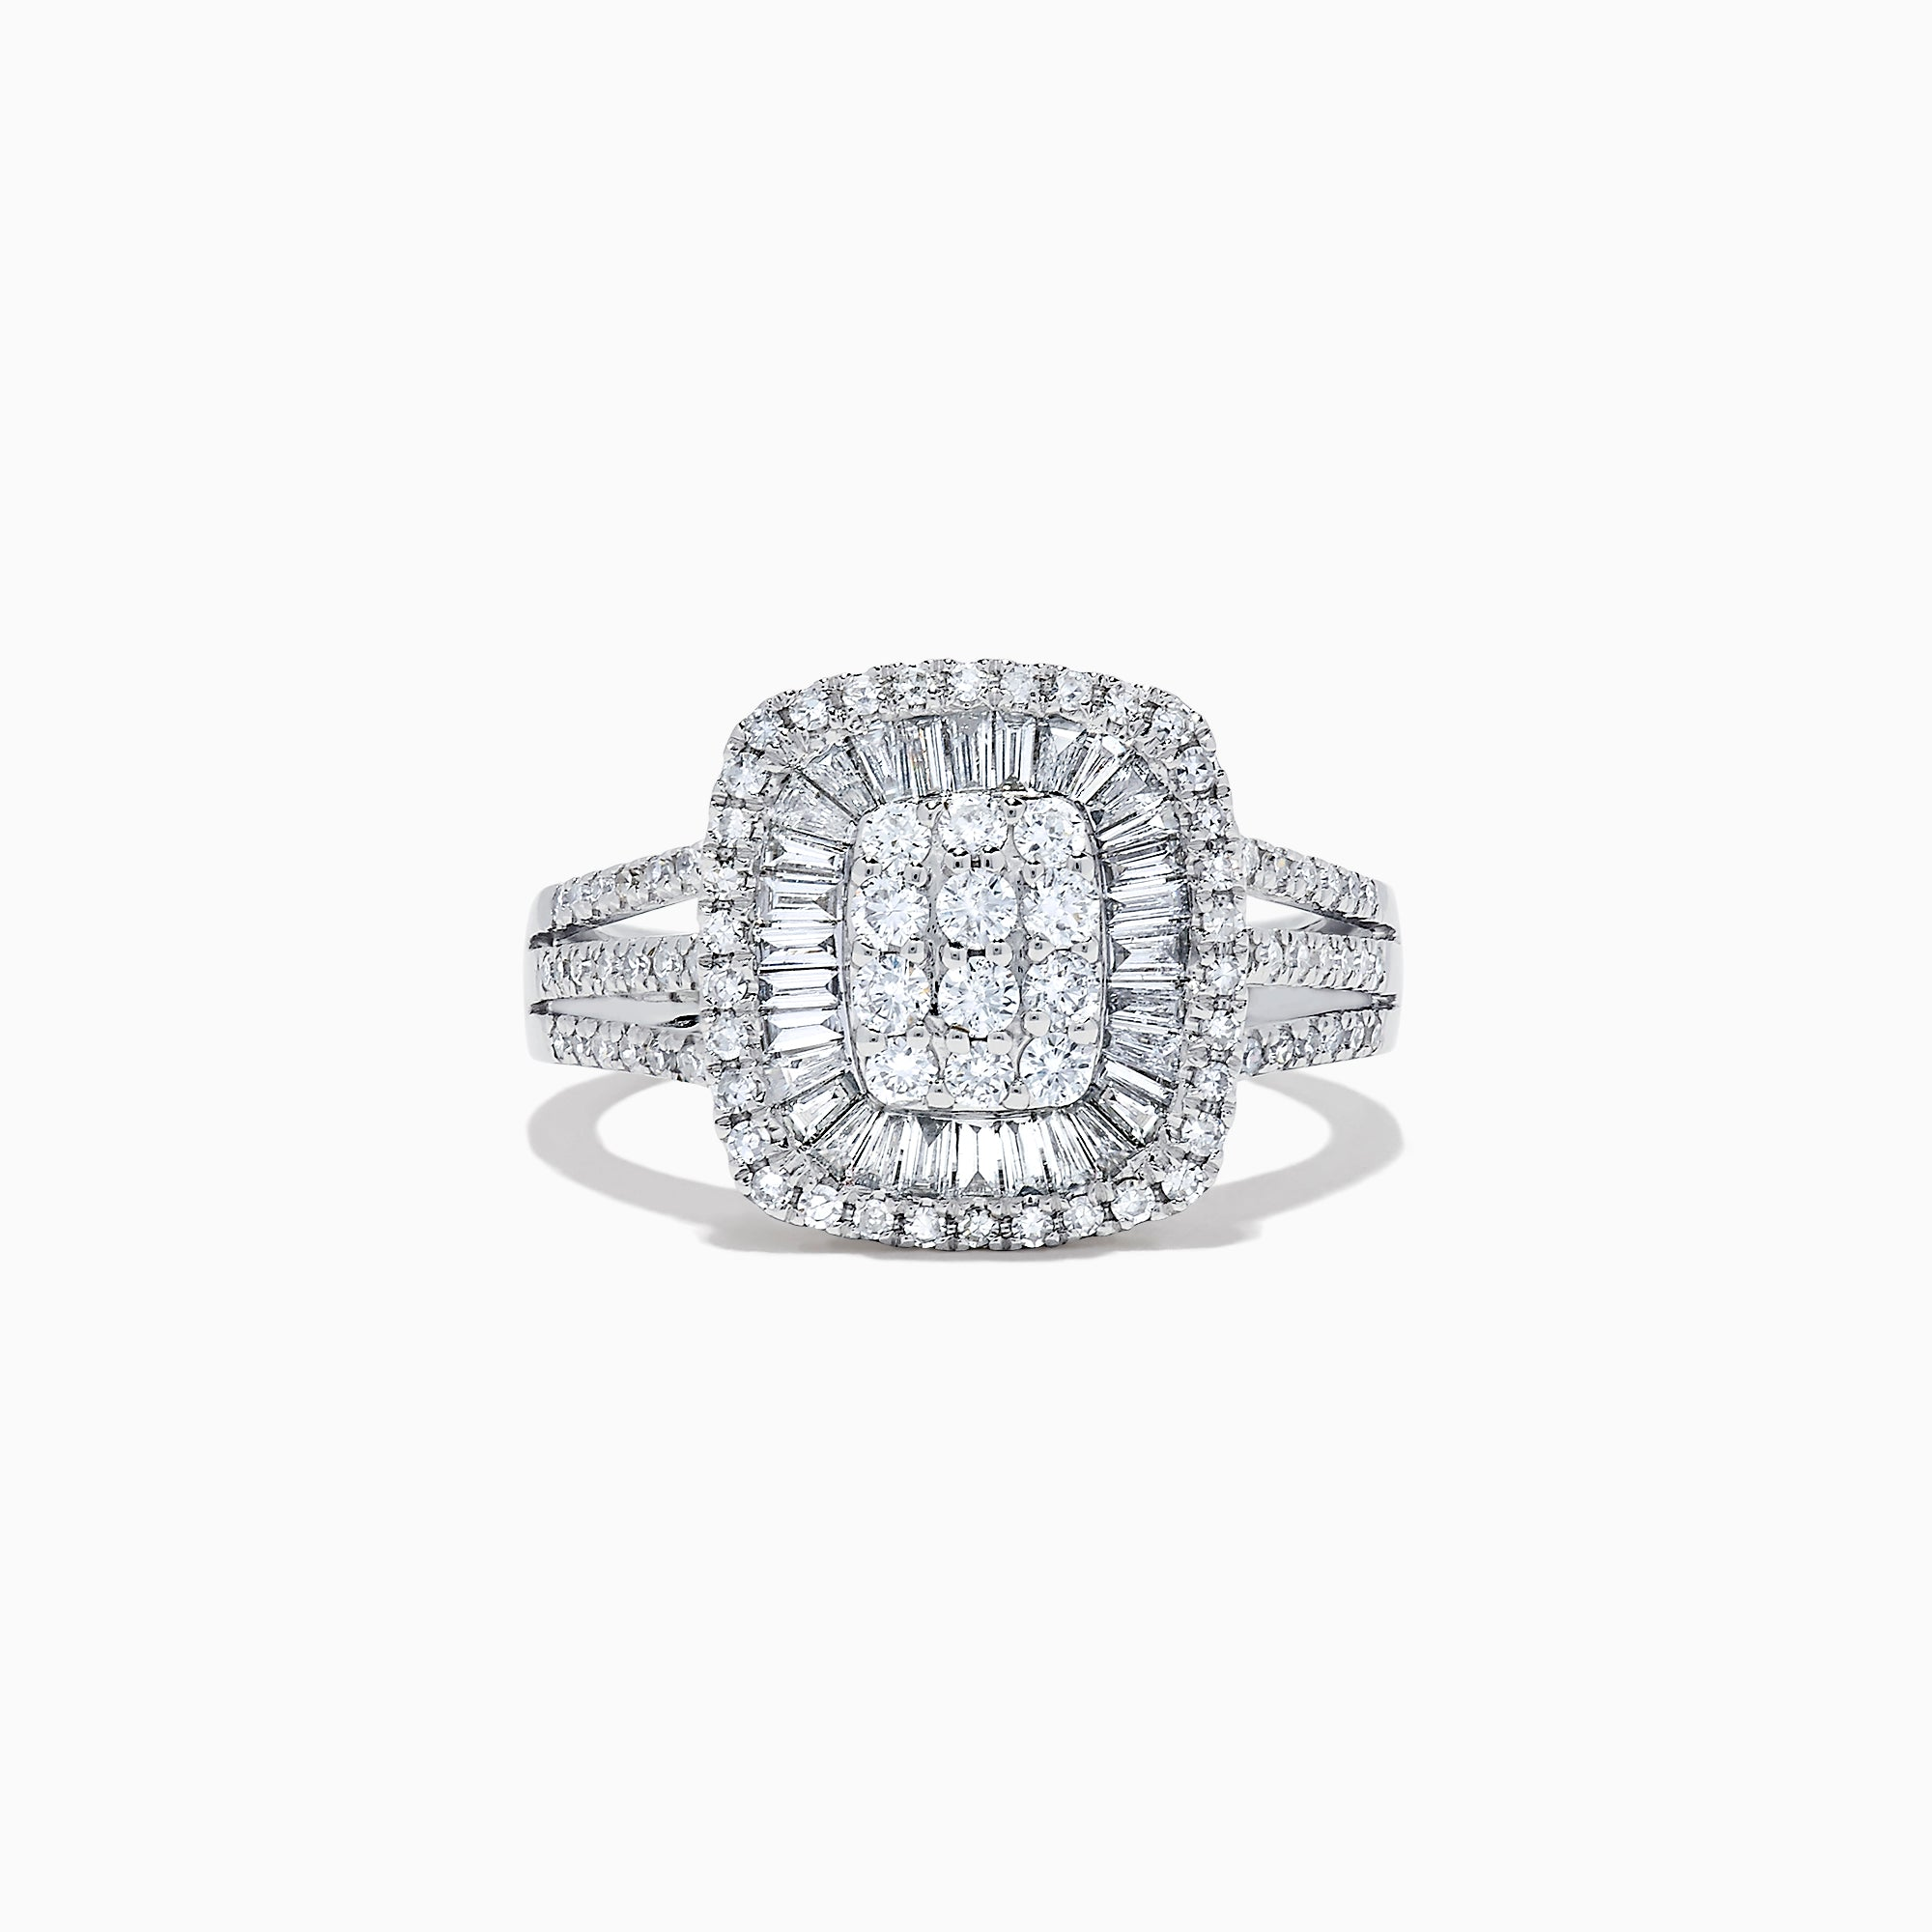 Effy Classique 14K White Gold Diamond Ring, 1.01 TCW